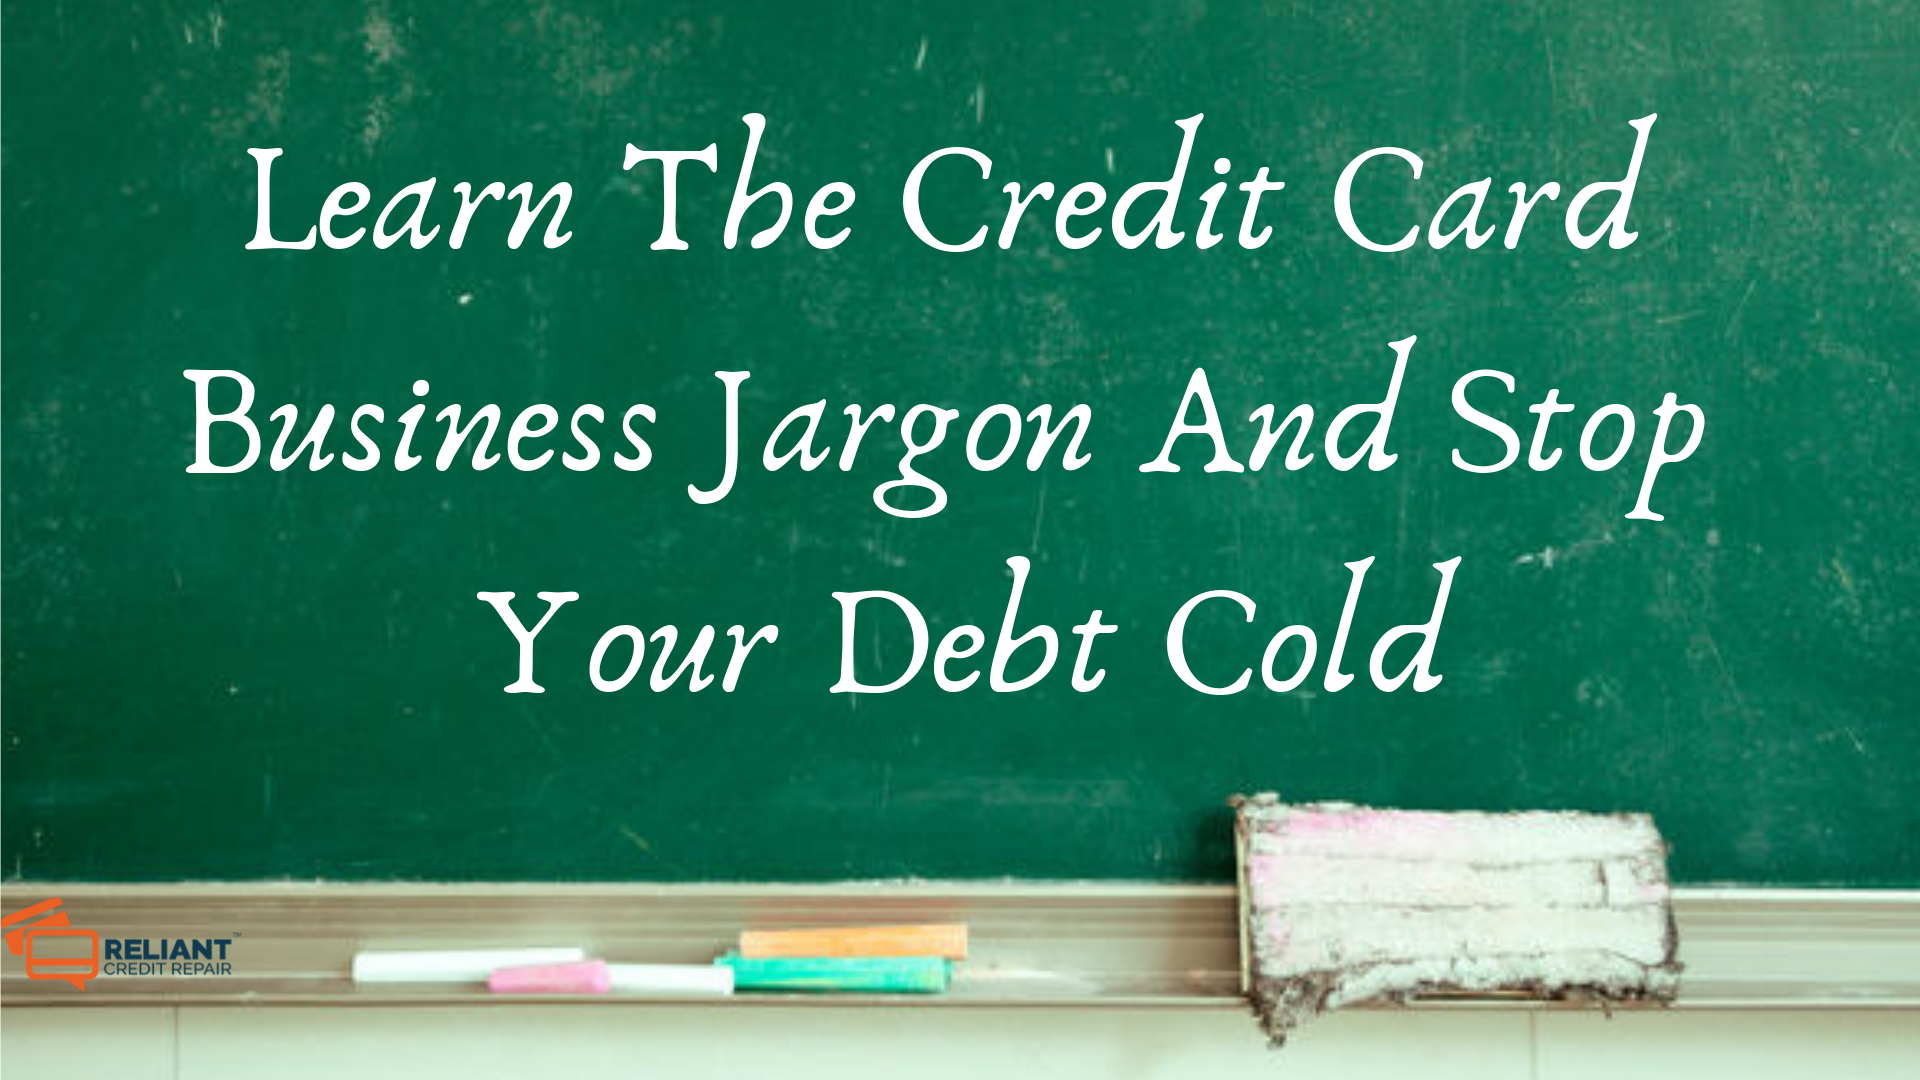 Learn The Credit Card Business Jargon And Stop Your Debt Cold